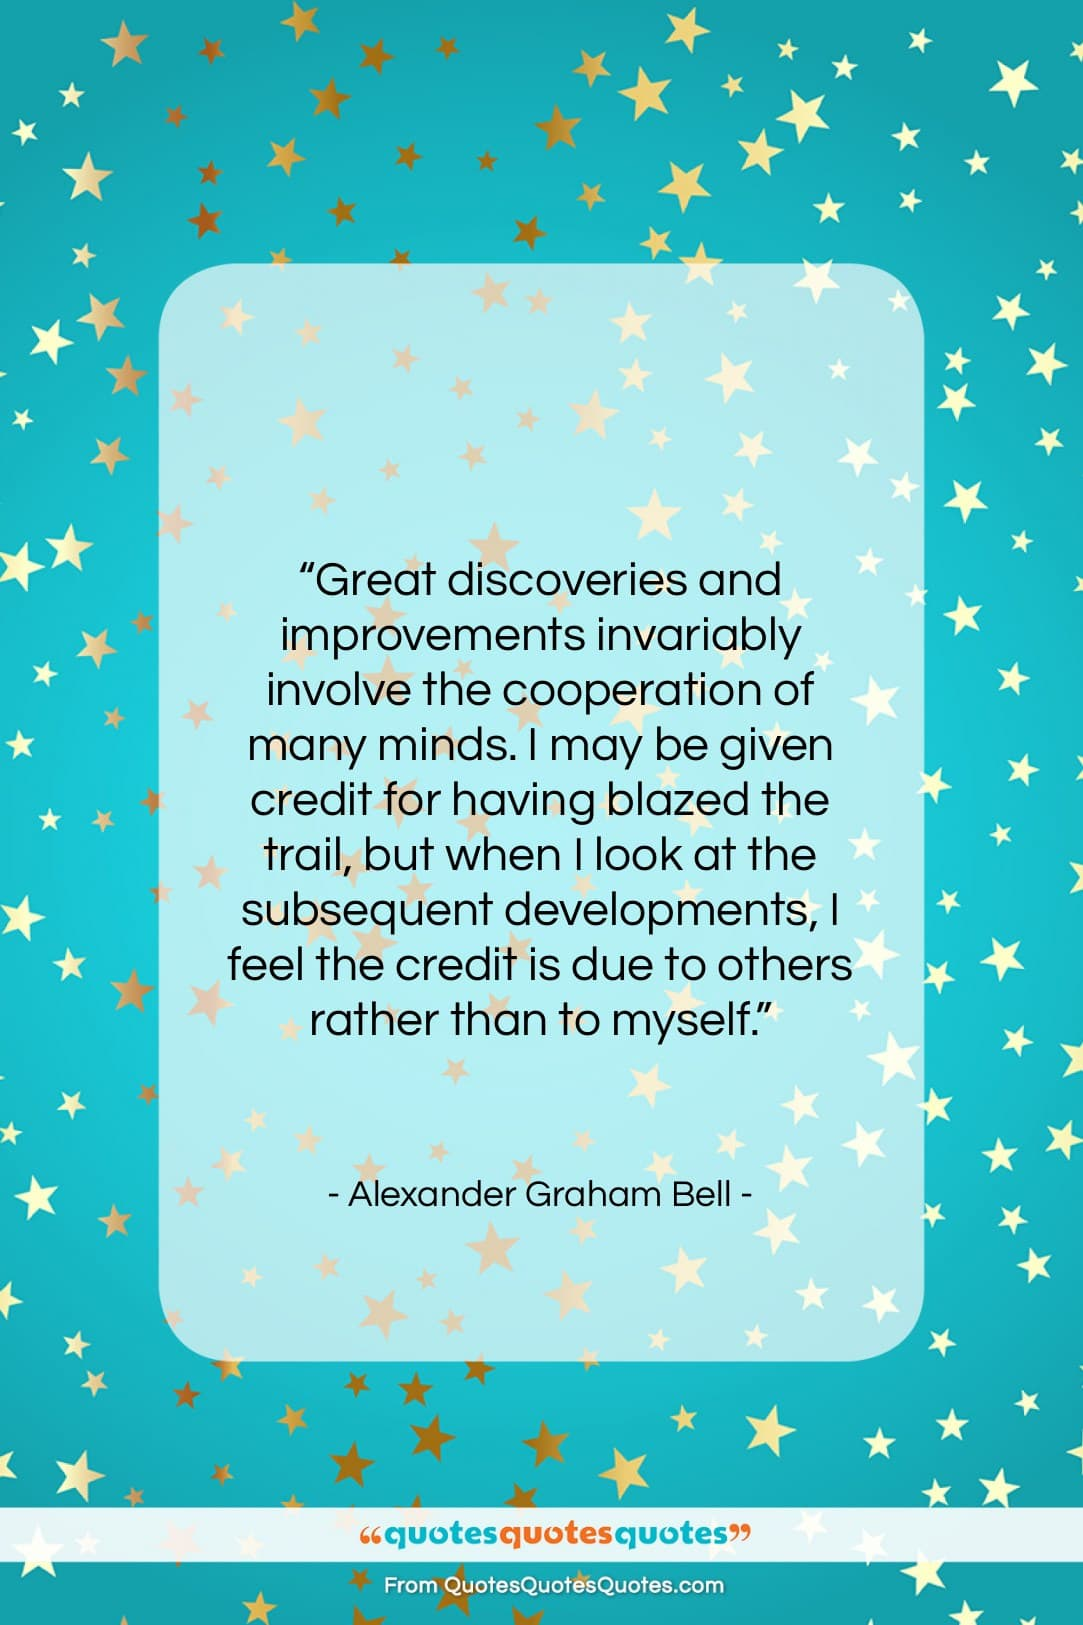 Get the whole Alexander Graham Bell quote: \